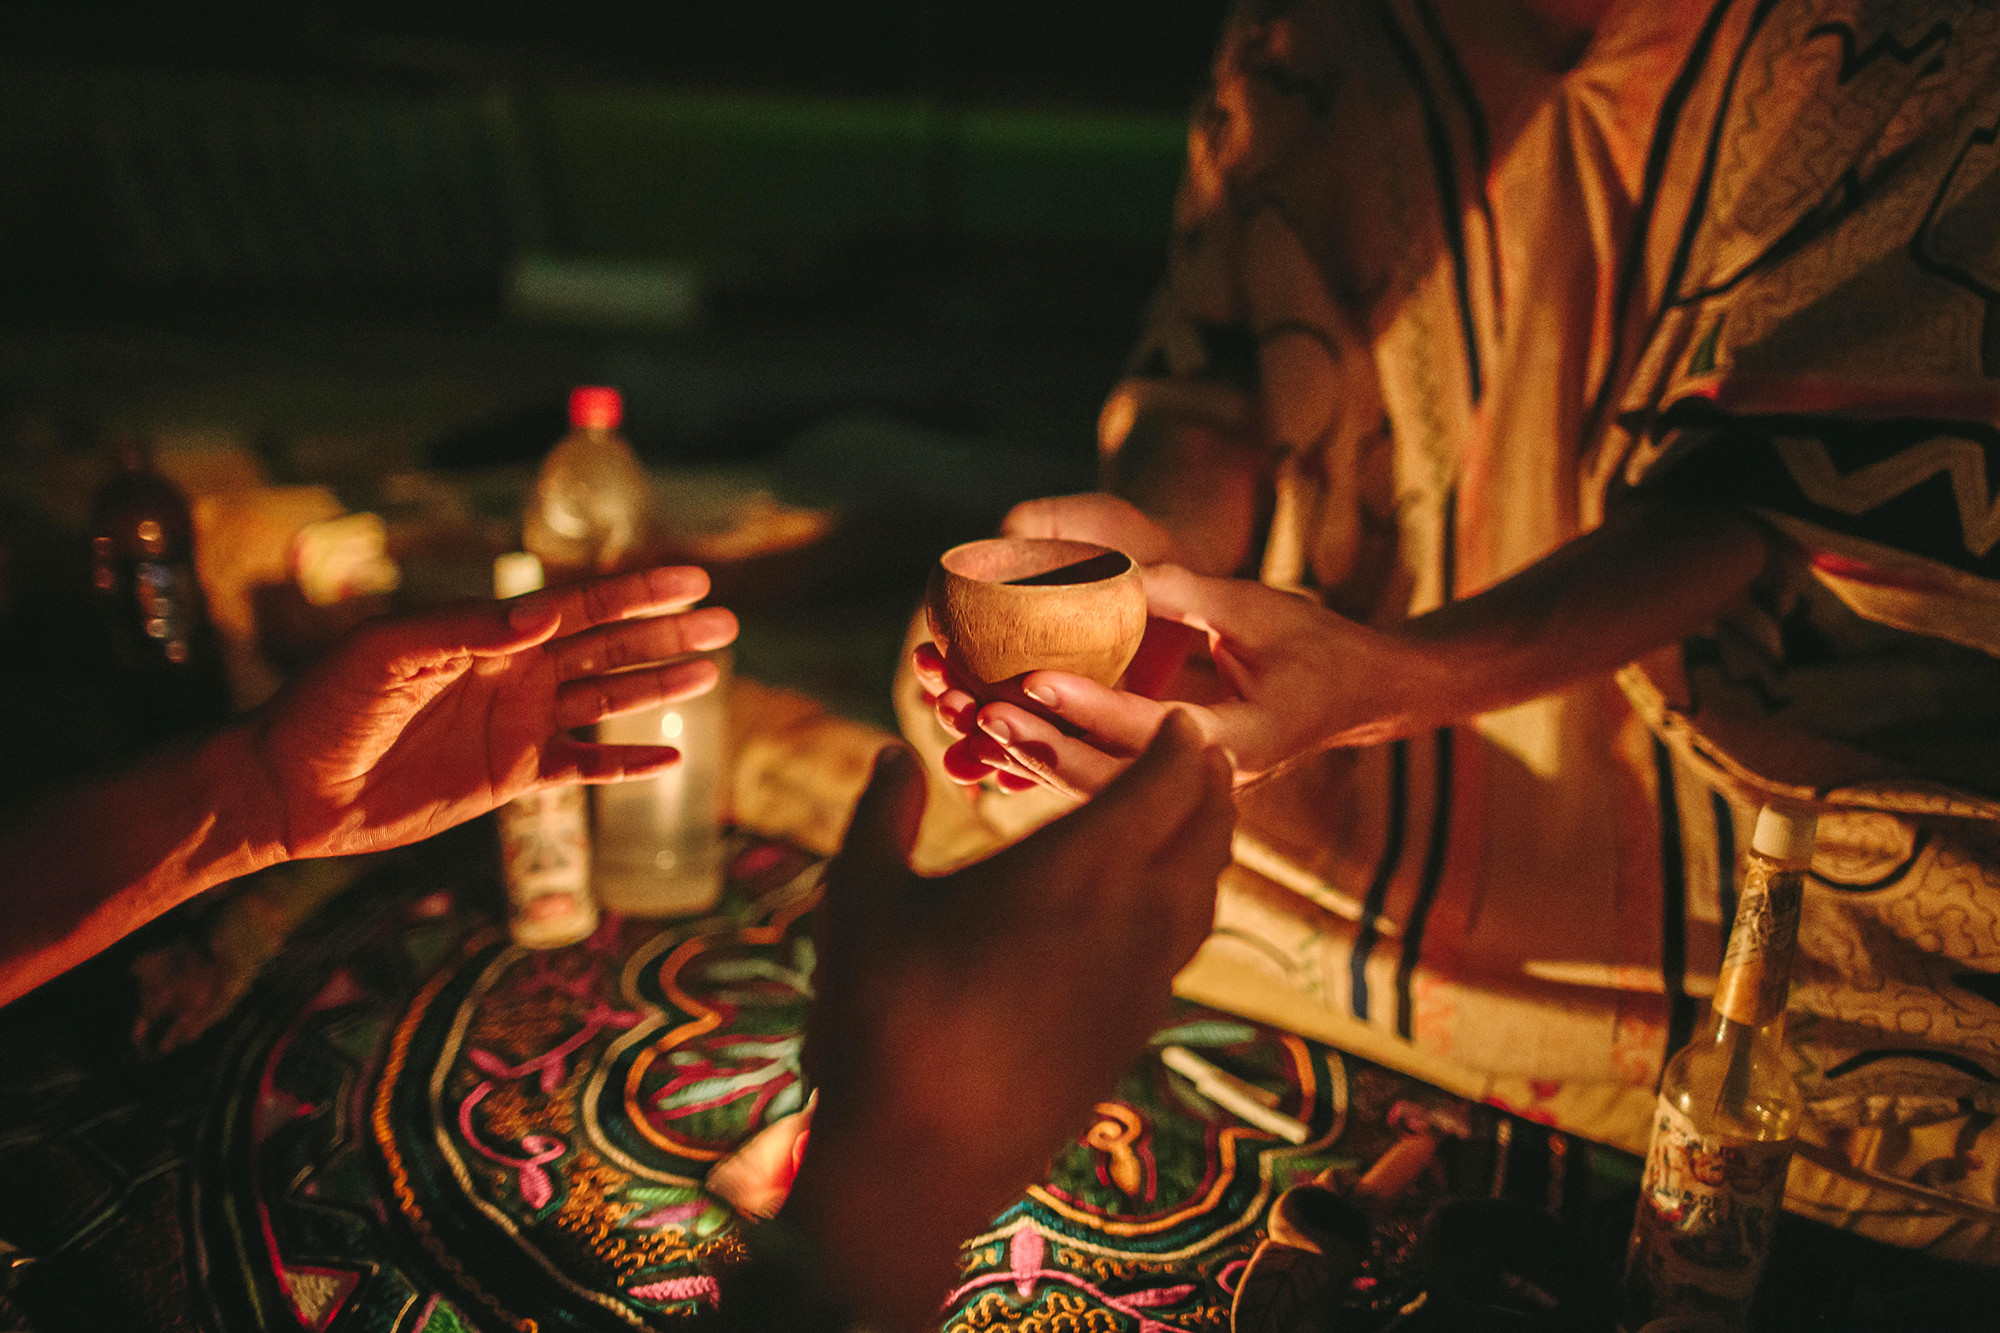 Gospel of ayahuasca: Hallucinogenic inspires honest religious trudge